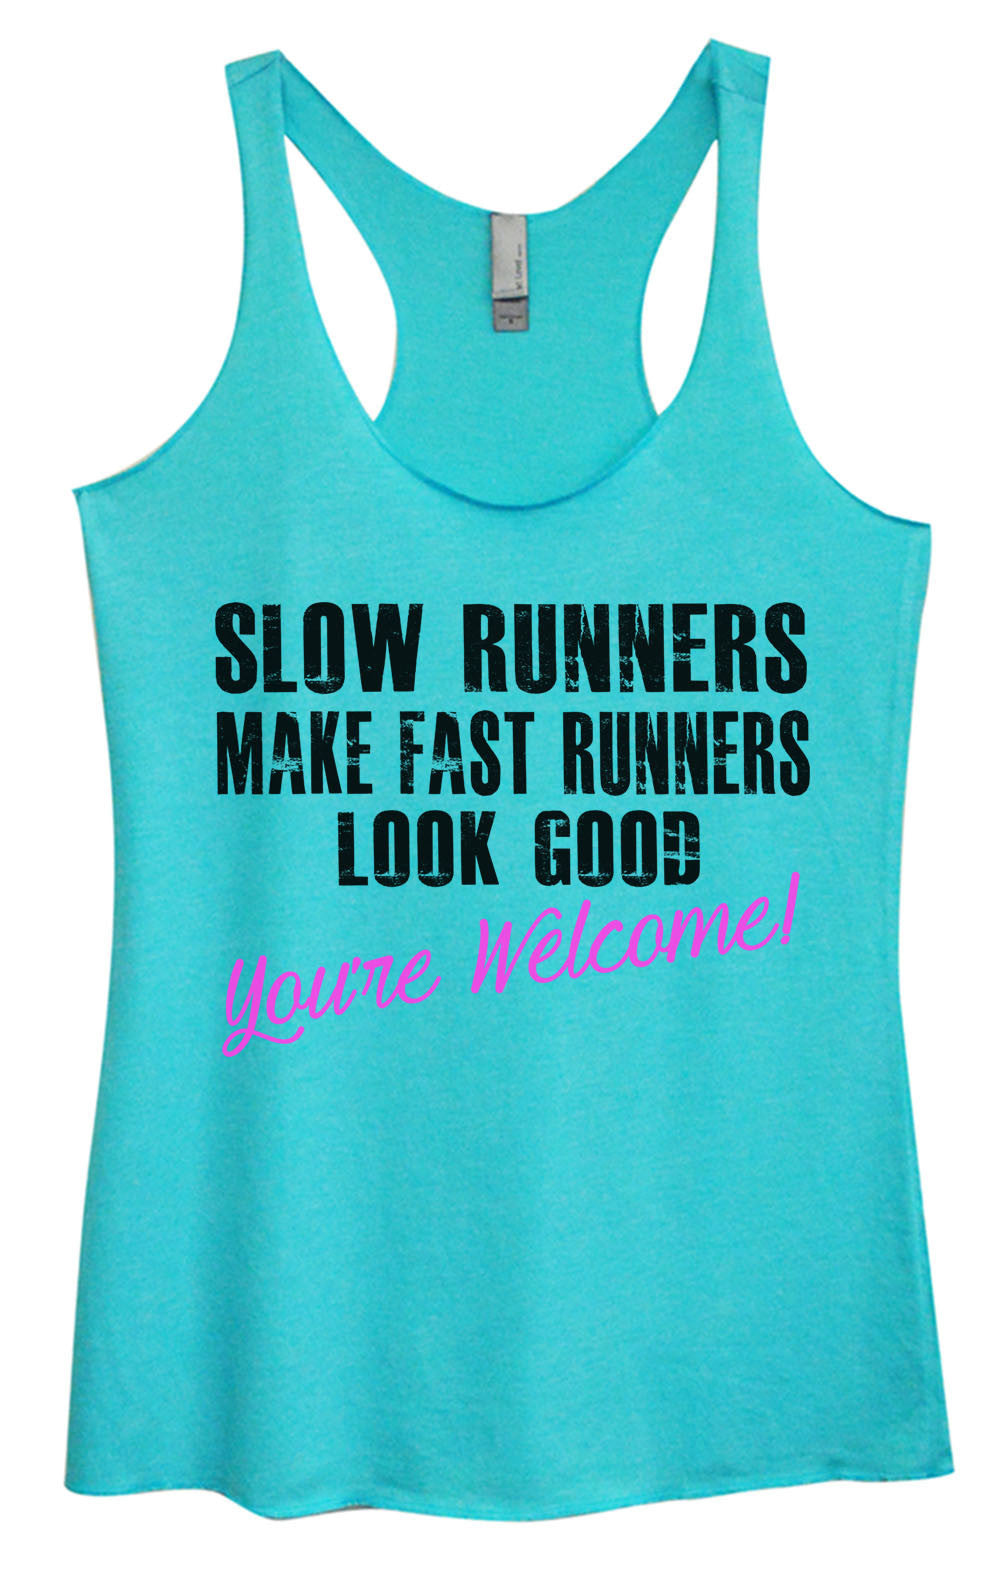 Womens Fashion Triblend Tank Top - Slow Runnres Make Fast Runners Look Good You're Welcome! - Tri-735 - Funny Shirts Tank Tops Burnouts and Triblends  - 4